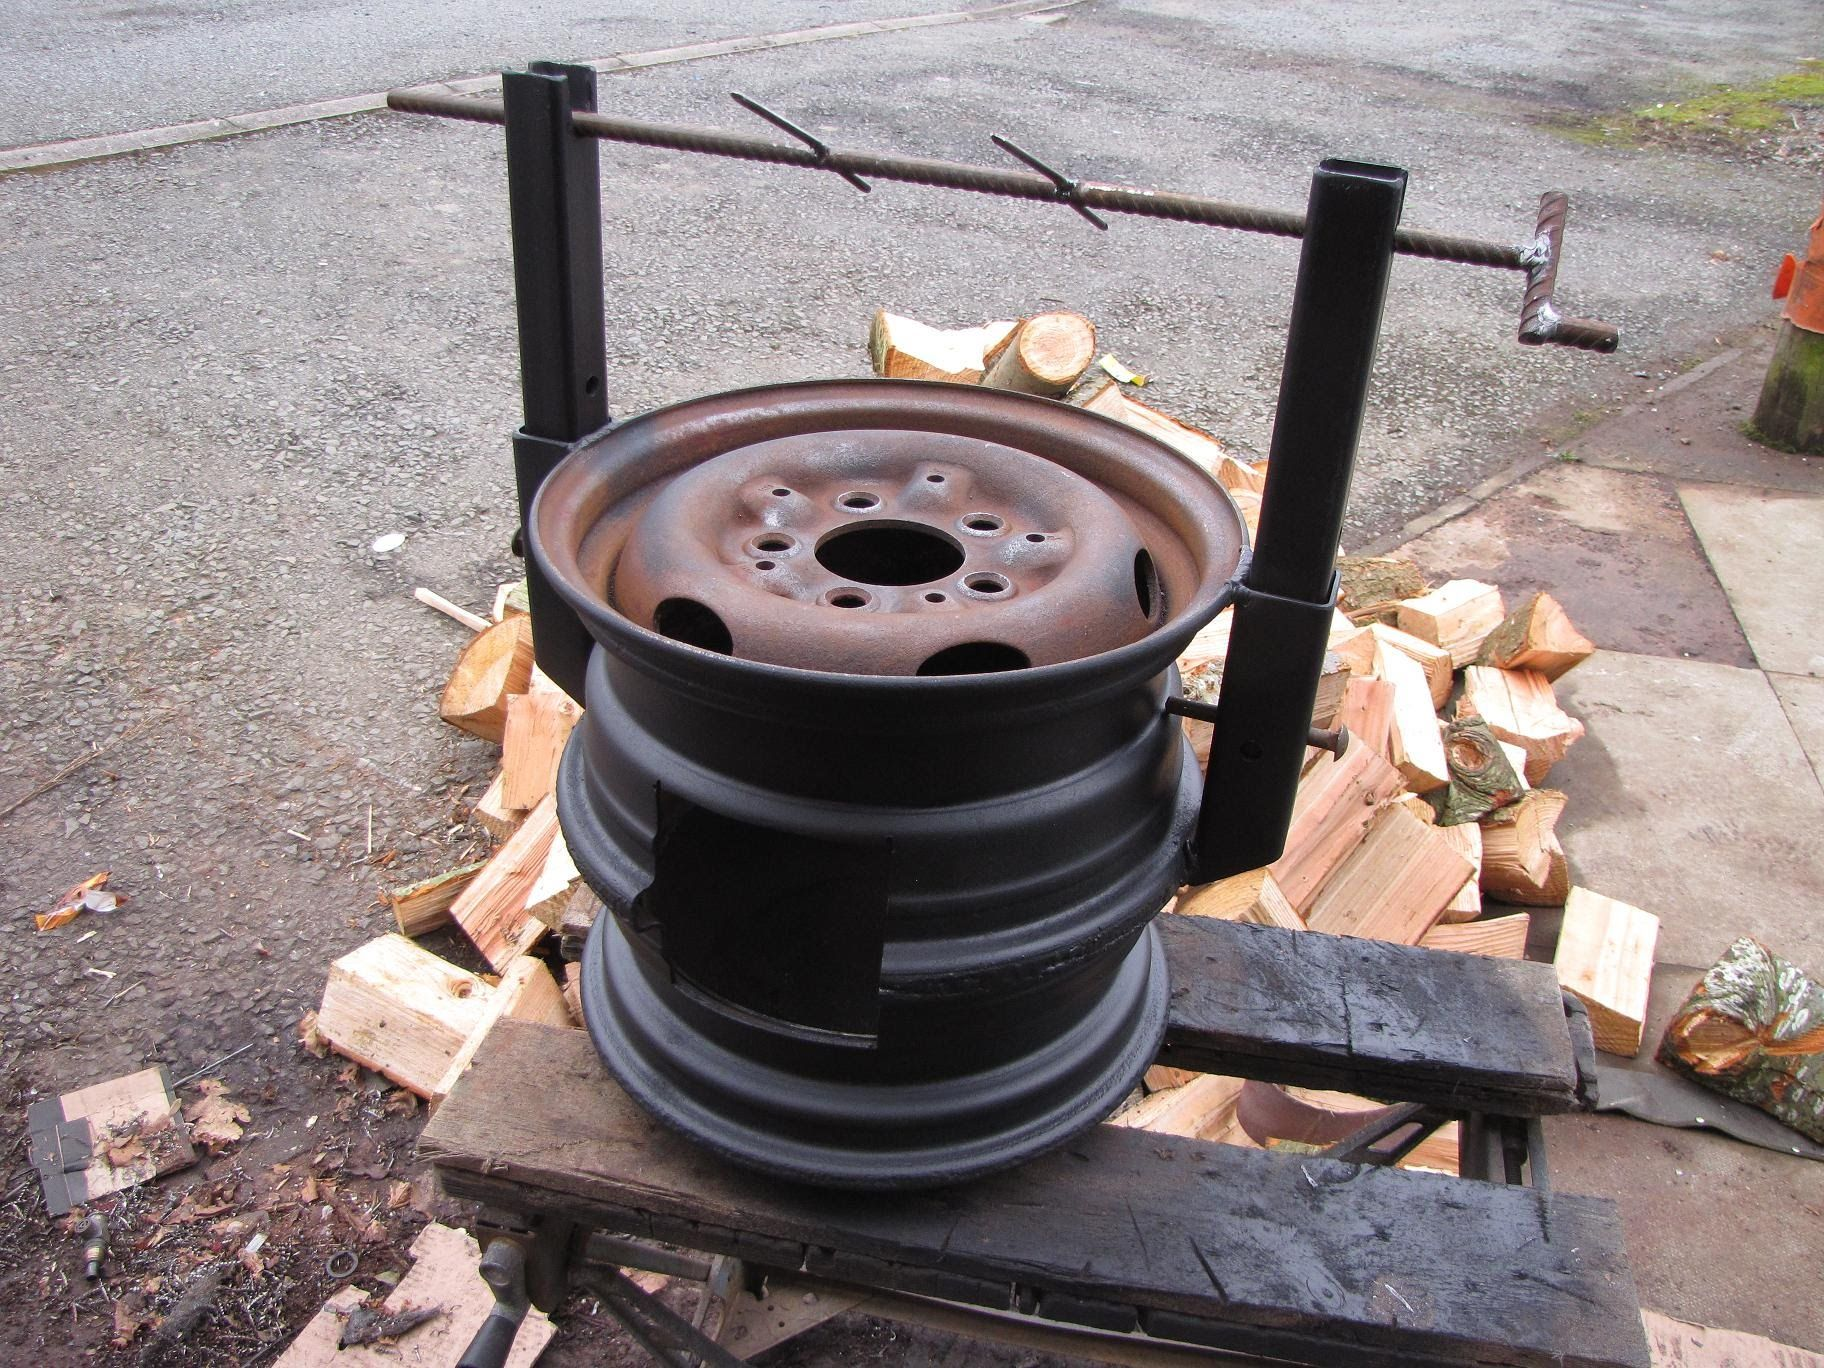 How to make your own wood stove cooker using a couple of old car rims. A really easy welding project if youve treated yourself to a new welder. When youve fi...